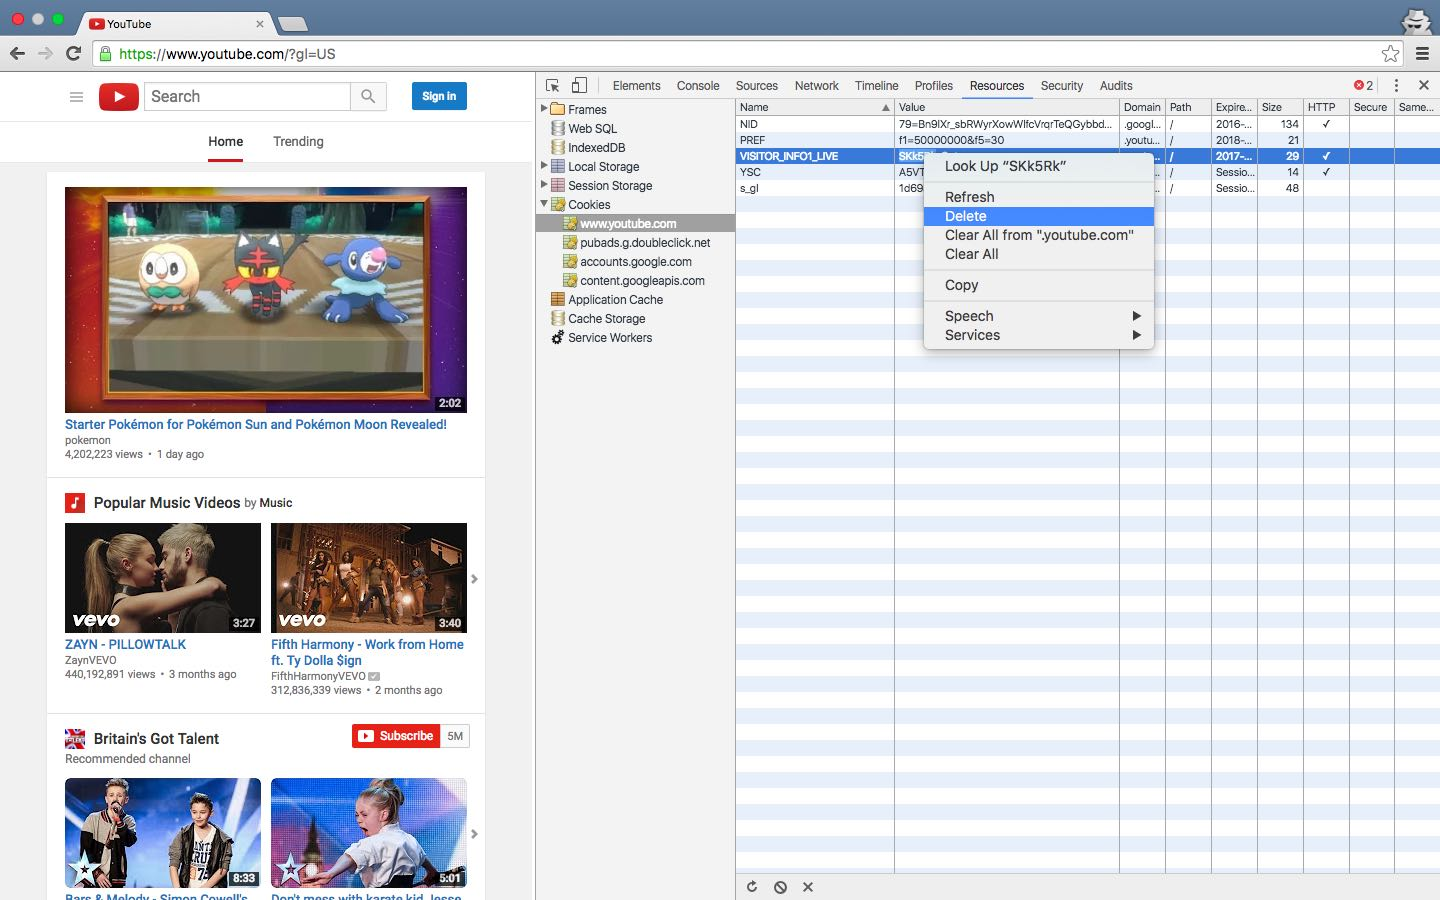 Chrome for OS X how to enable Material Design Mac screenshot 007